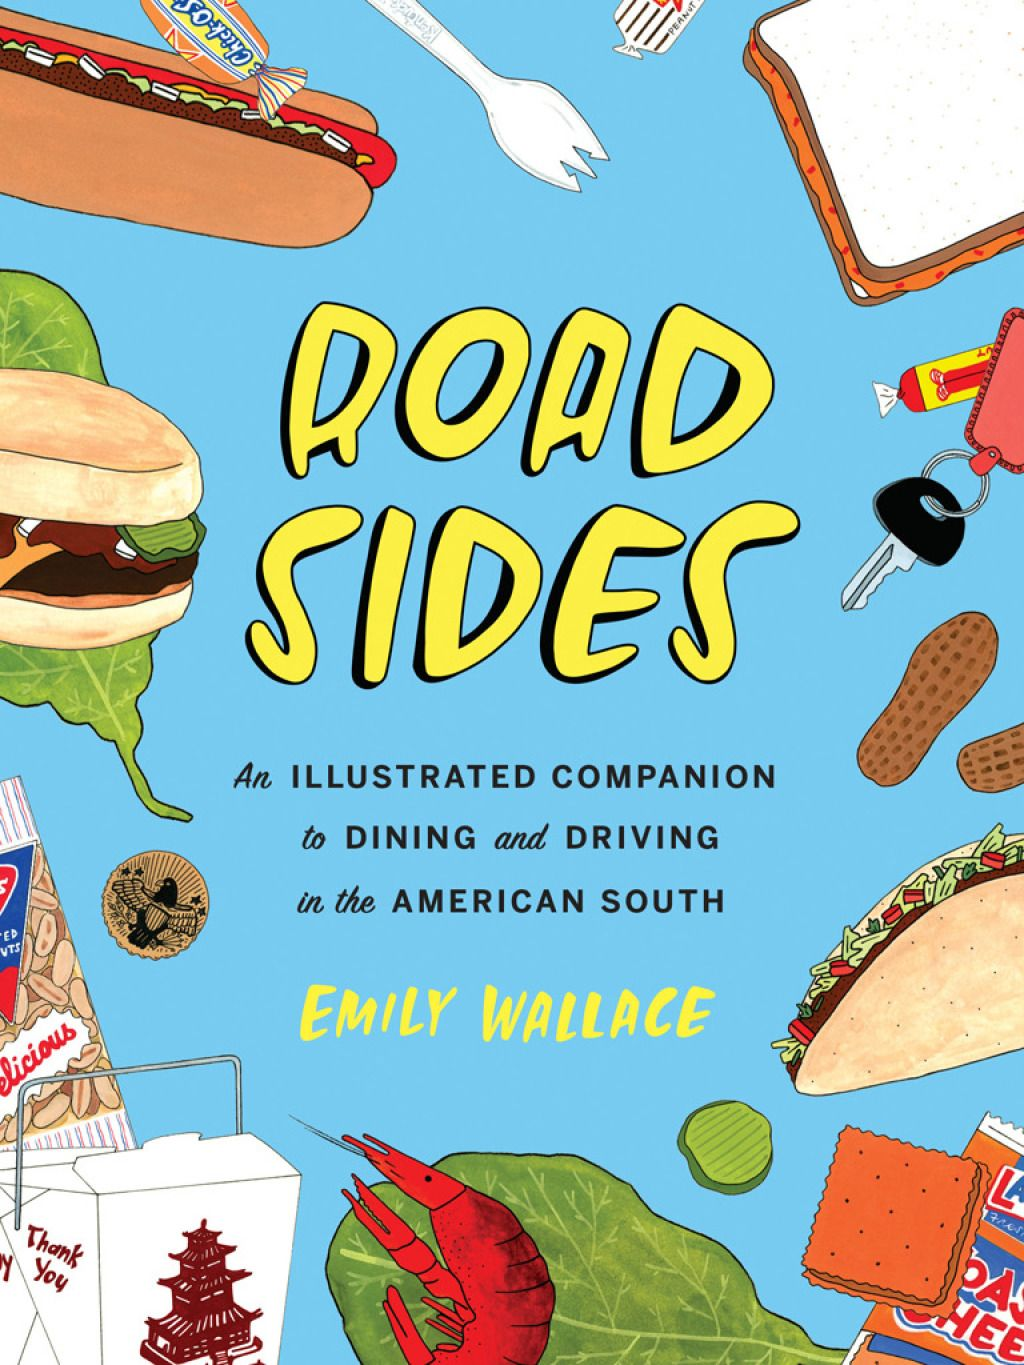 Road Sides (eBook) Health, fitness expo, New things to